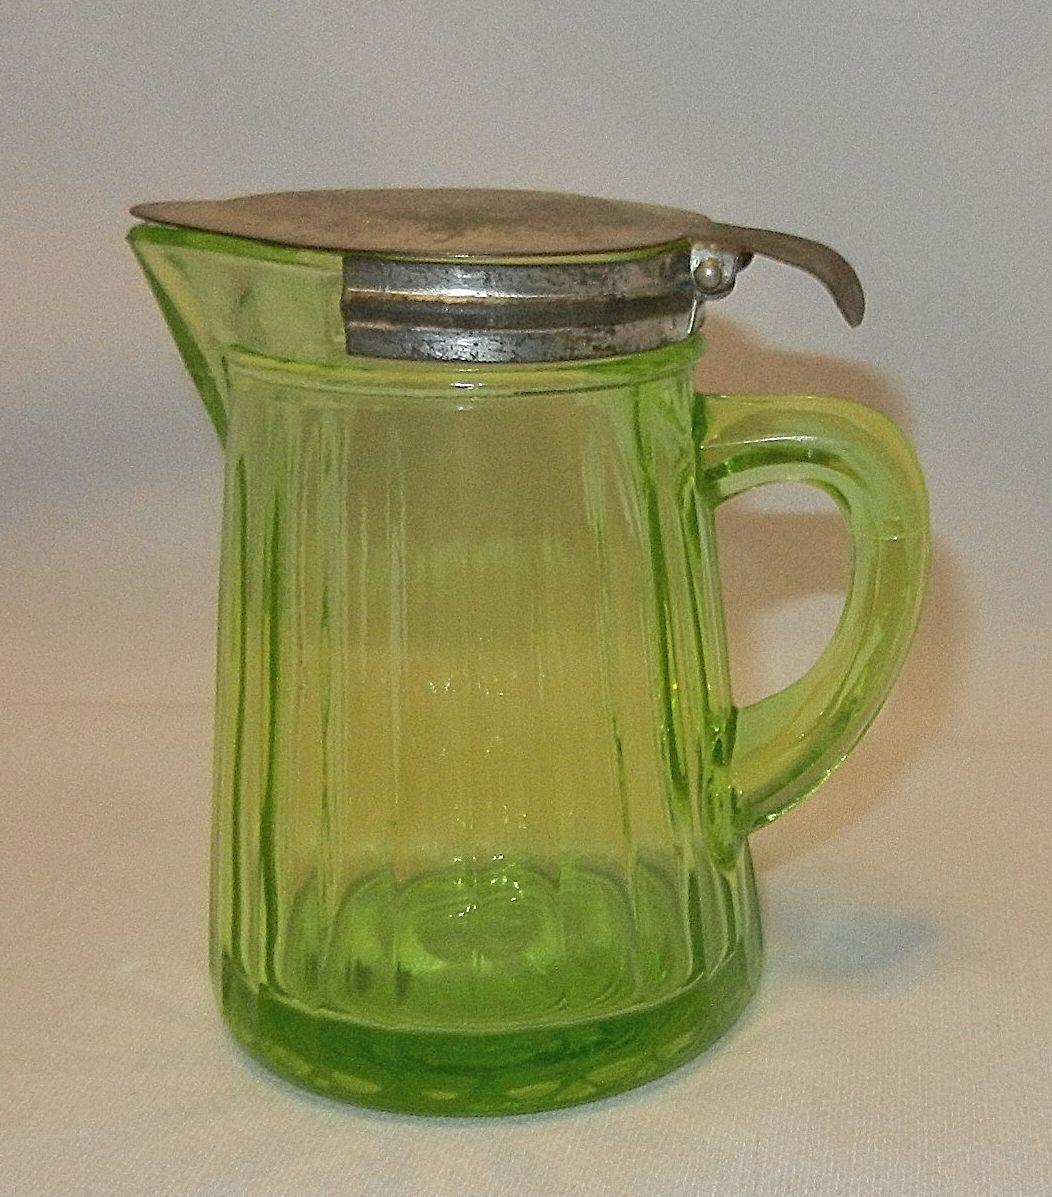 Glass Pitcher With Lid Home Essentials U0026 Beyond 64 Oz